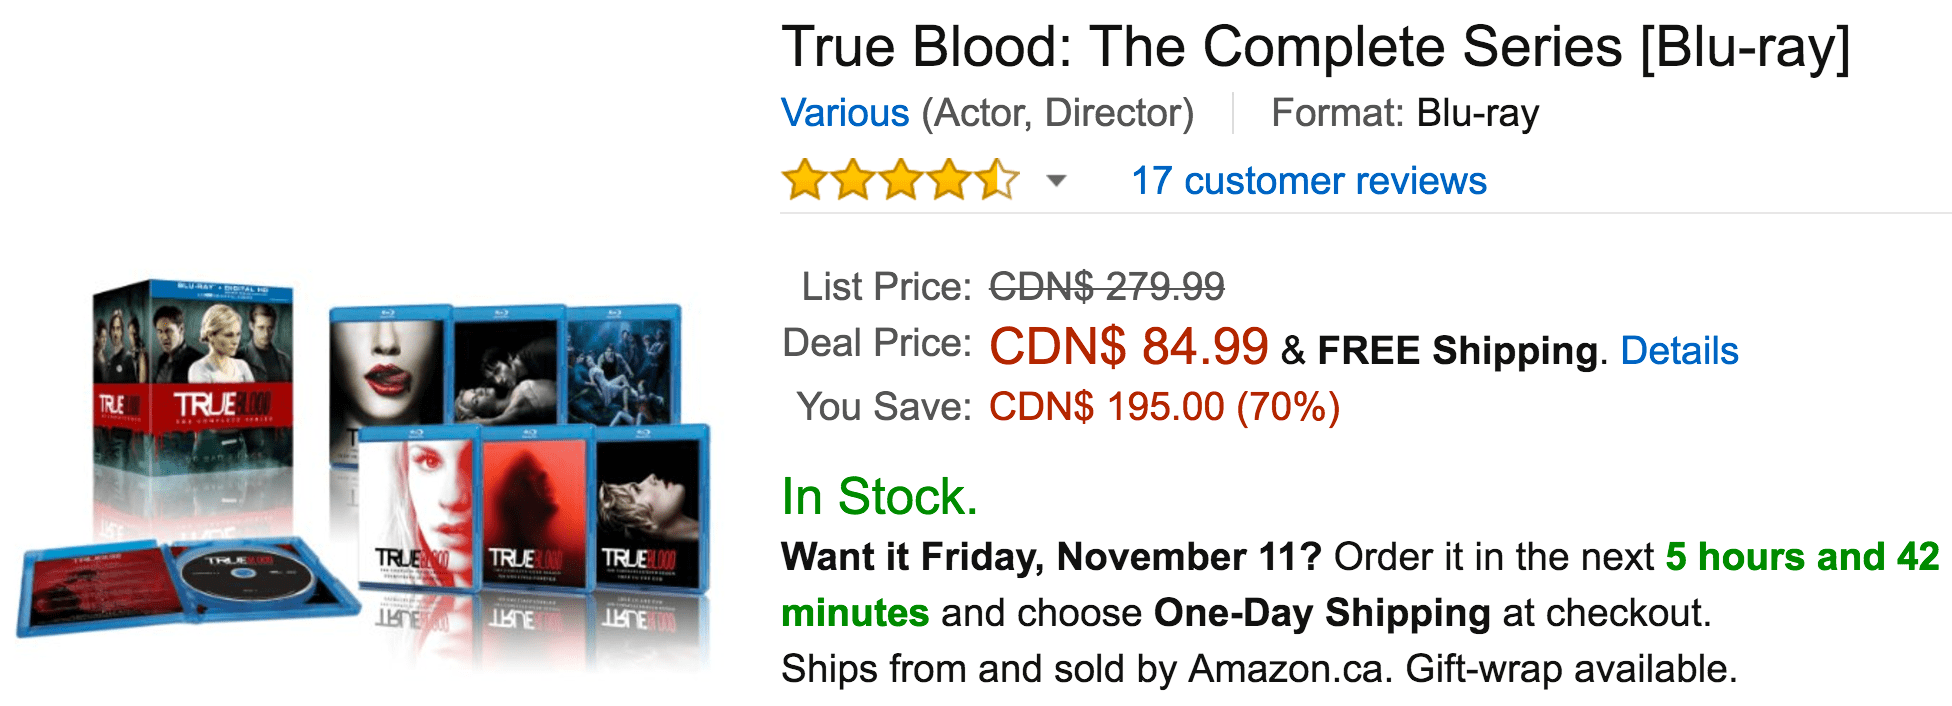 Amazon Canada Black Friday Today's Deals: Save 70% On True Blood: The Complete Series, 56% On Angel: The Complete Series, 49% on Simon Air Game & More Offers